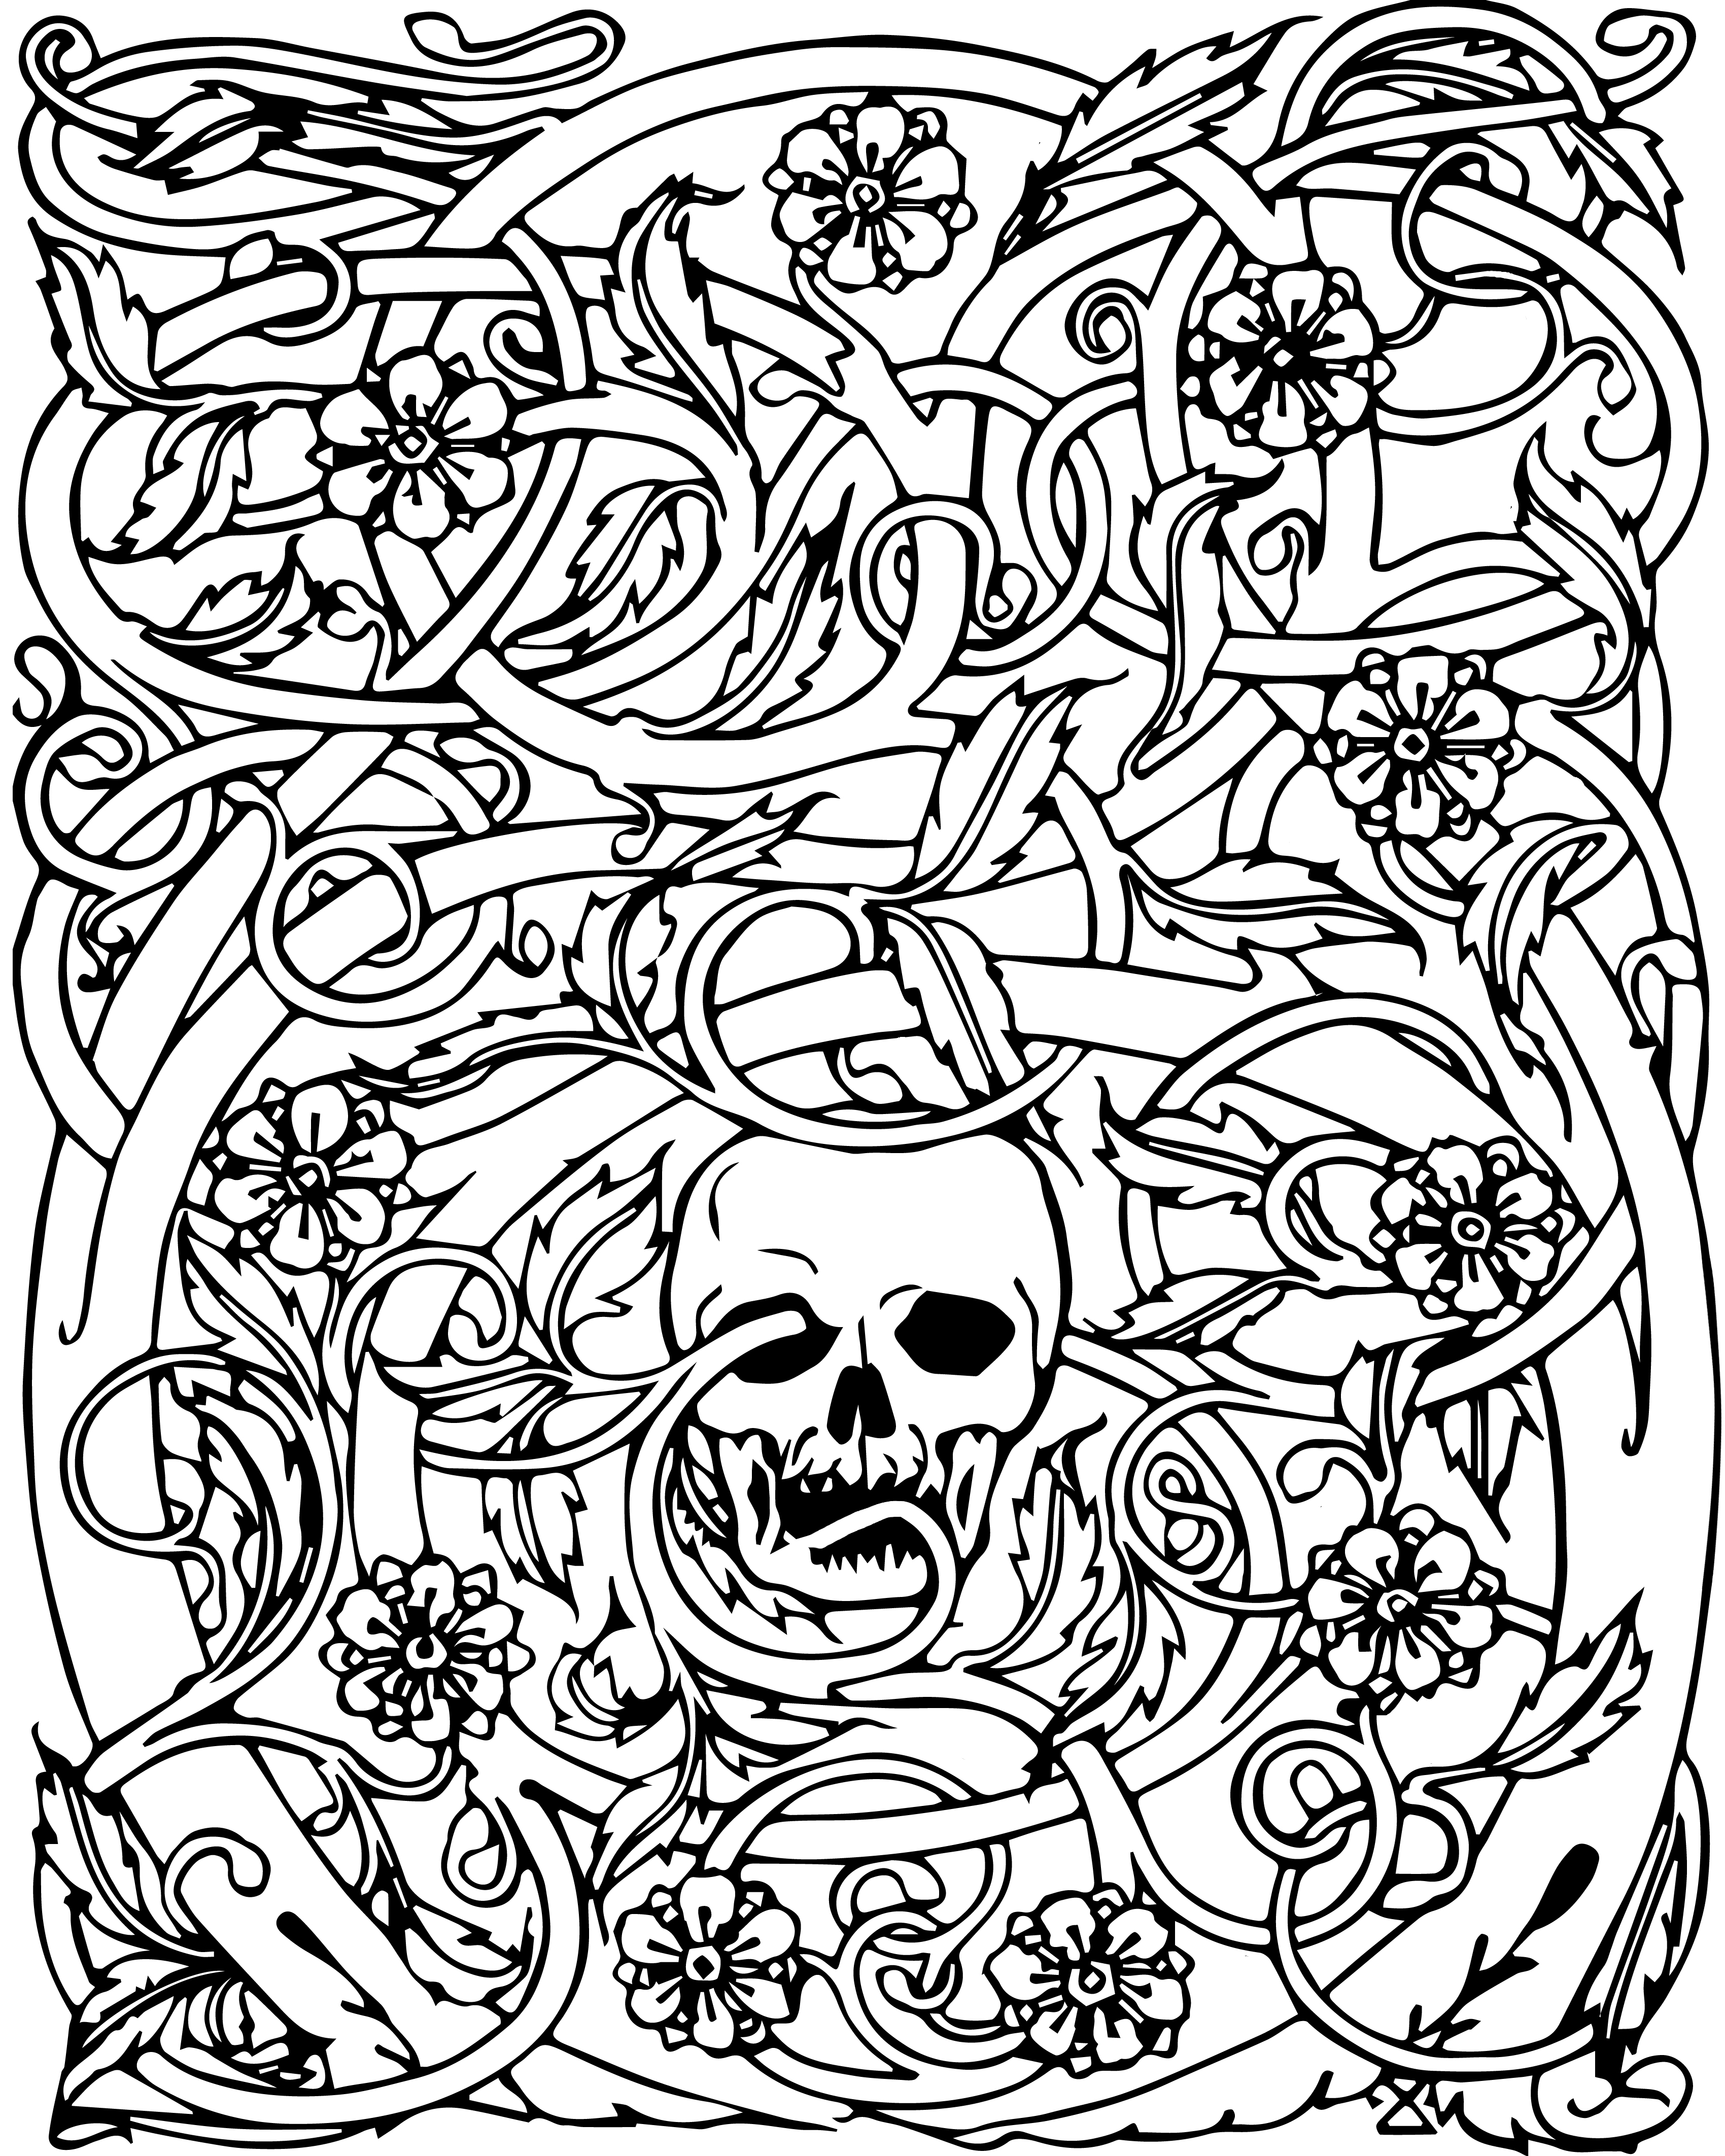 3400x4250 Halloween Zombie Coloring Pages Getcoloringpages Free